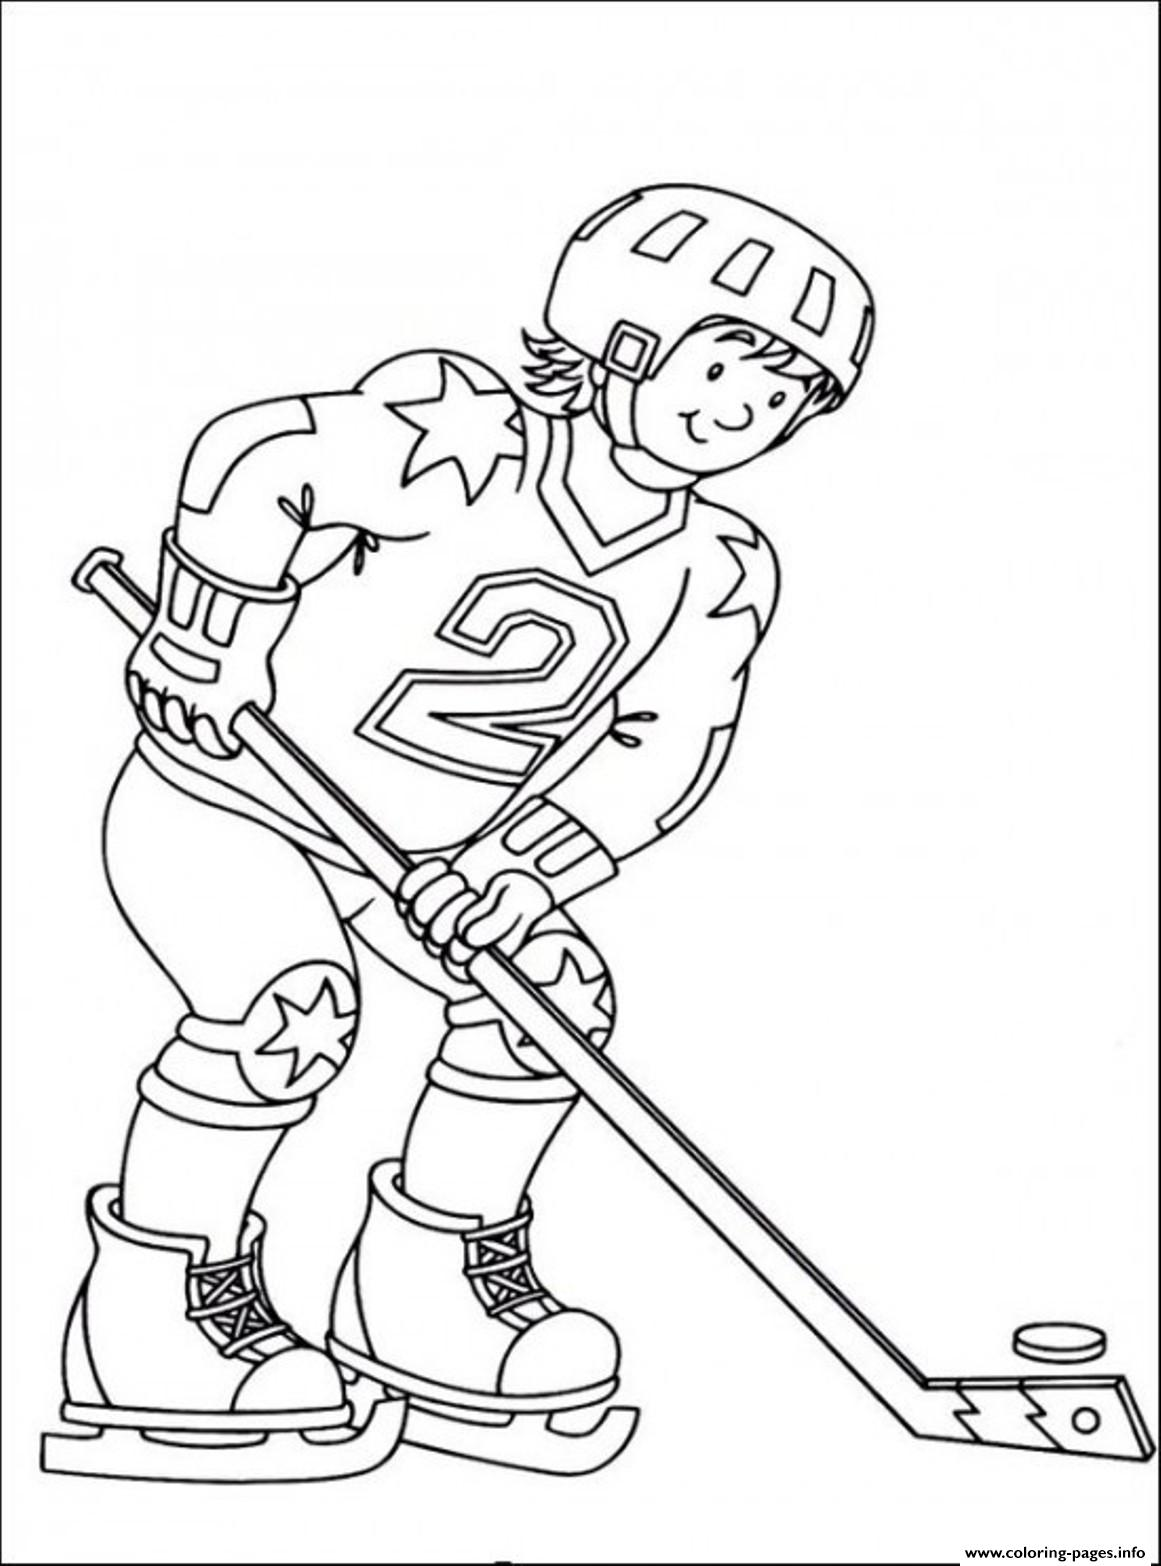 Hockey Sedbd Coloring Pages Printable